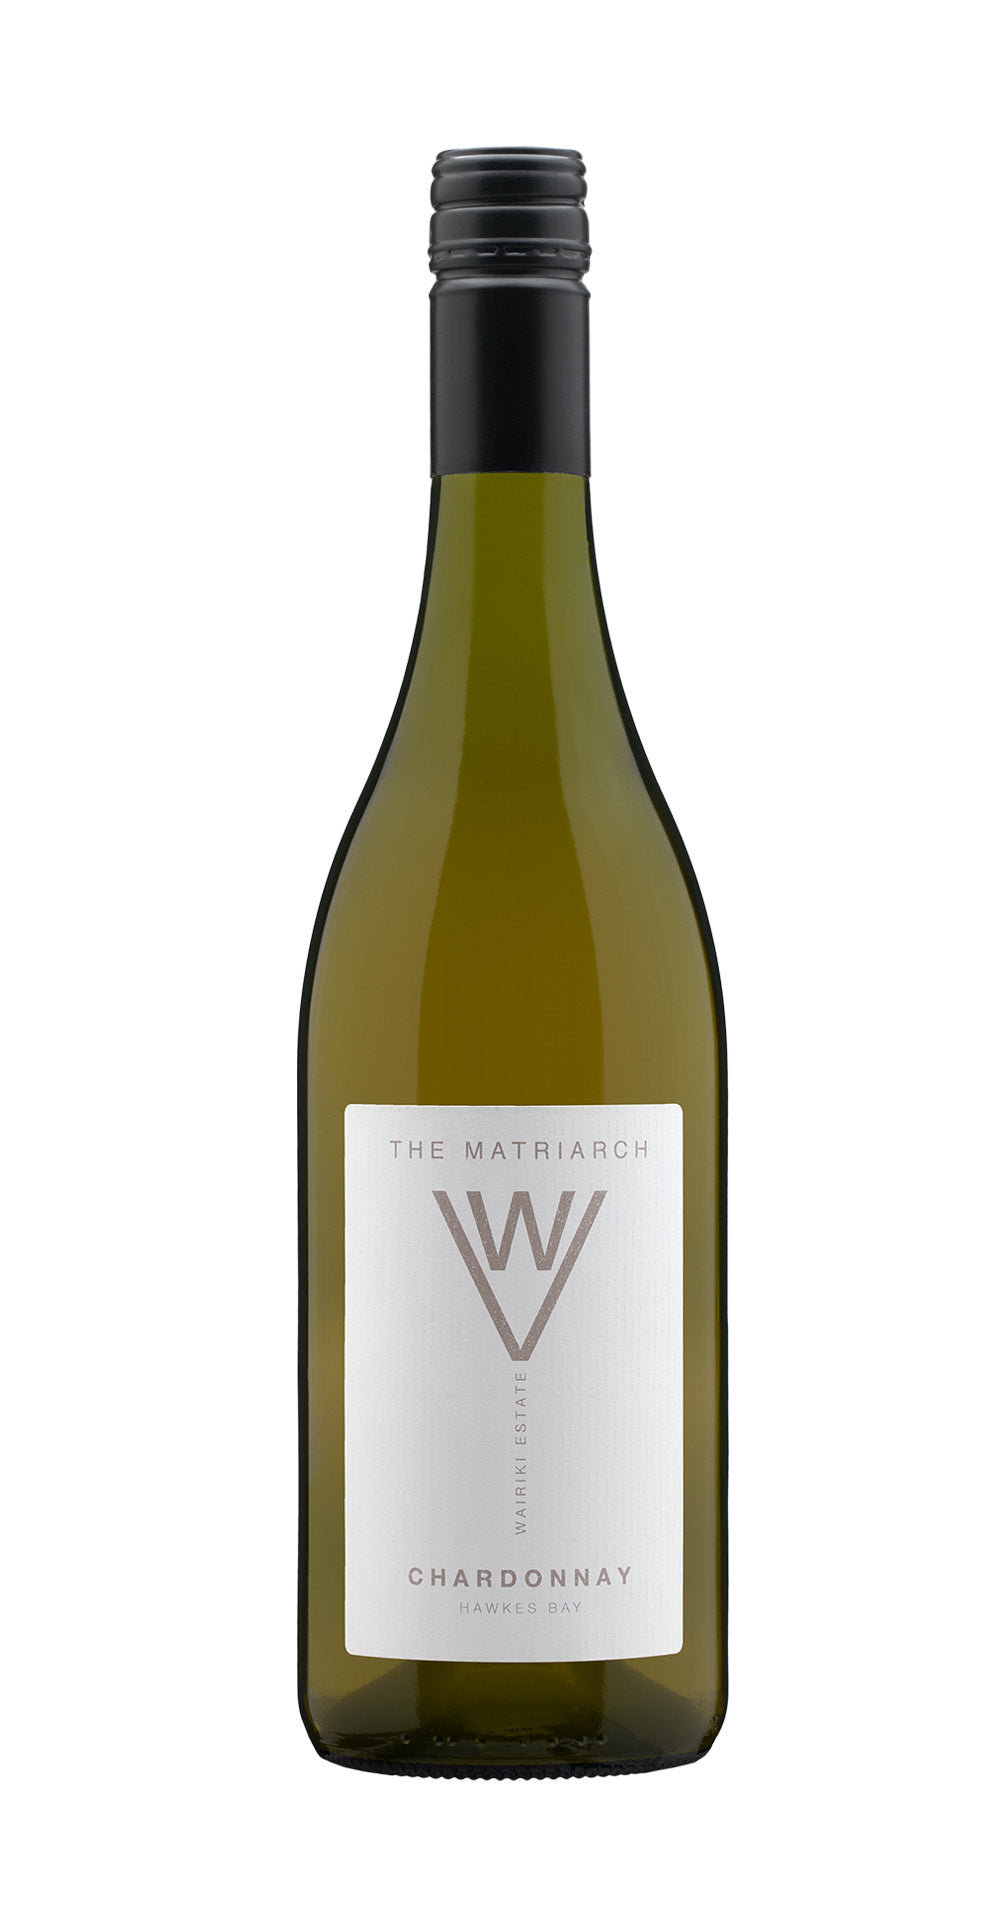 The Matriarch Chardonnay